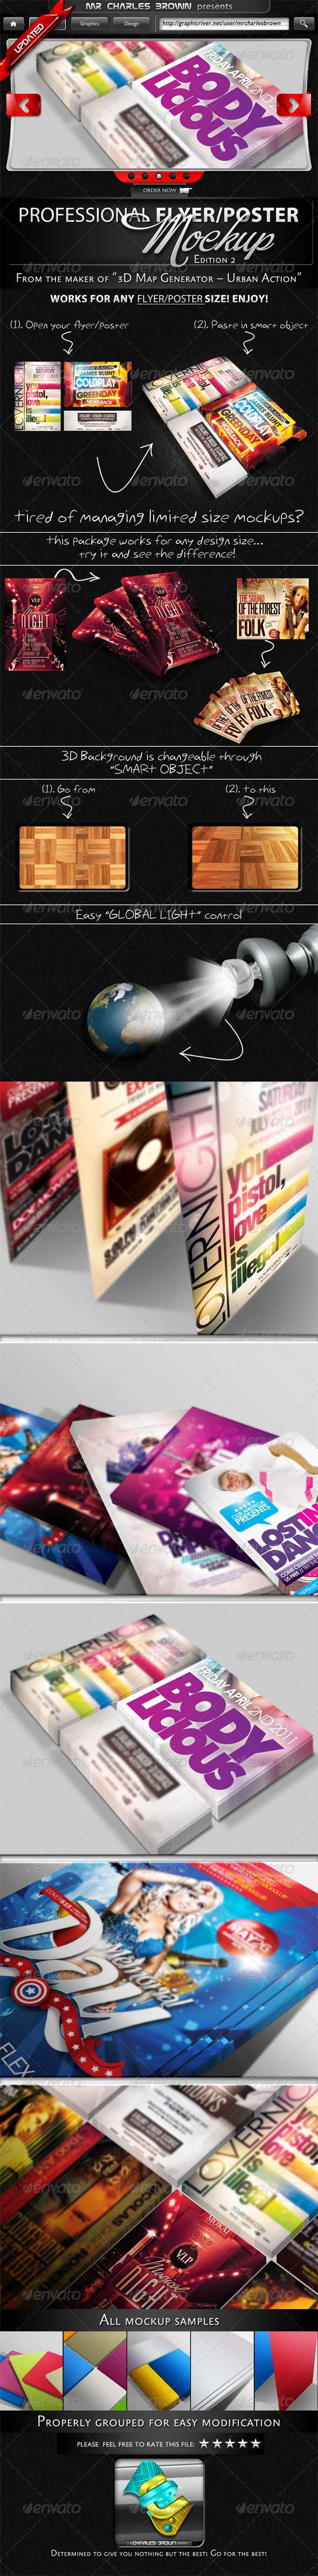 Professional Flyer &amp; Poster Mockup Bundle 2 - Flyers Print